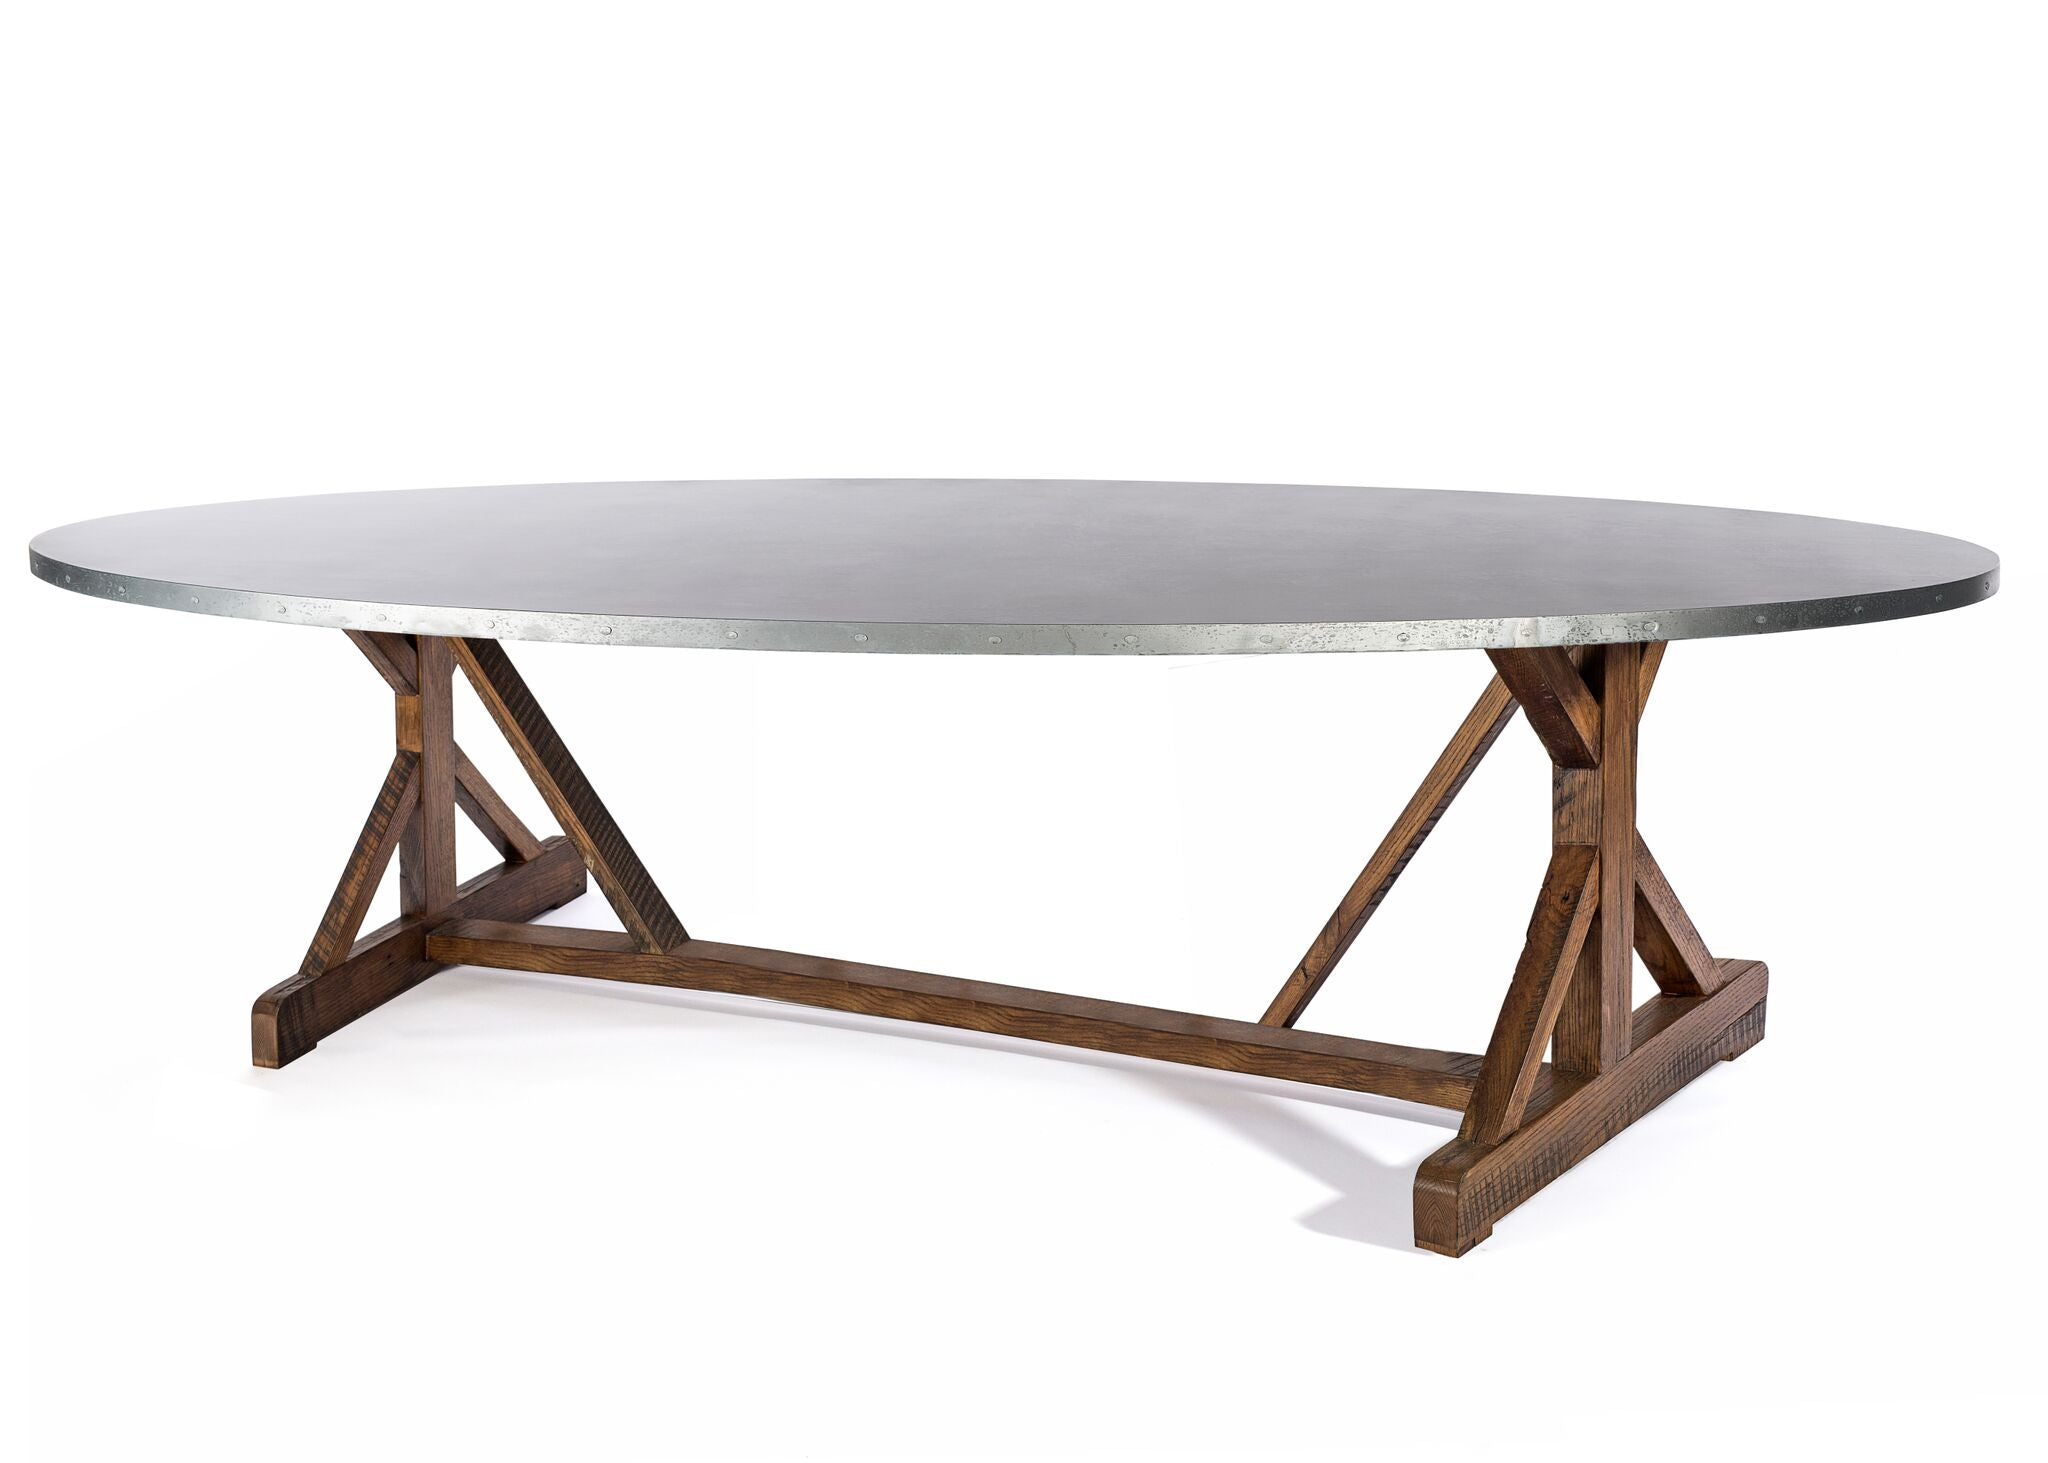 "Zinc Oval Tables | French Trestle Table | CLASSIC | White Wash on Reclaimed Oak | CUSTOM SIZE 72""L 32""W 30""H 